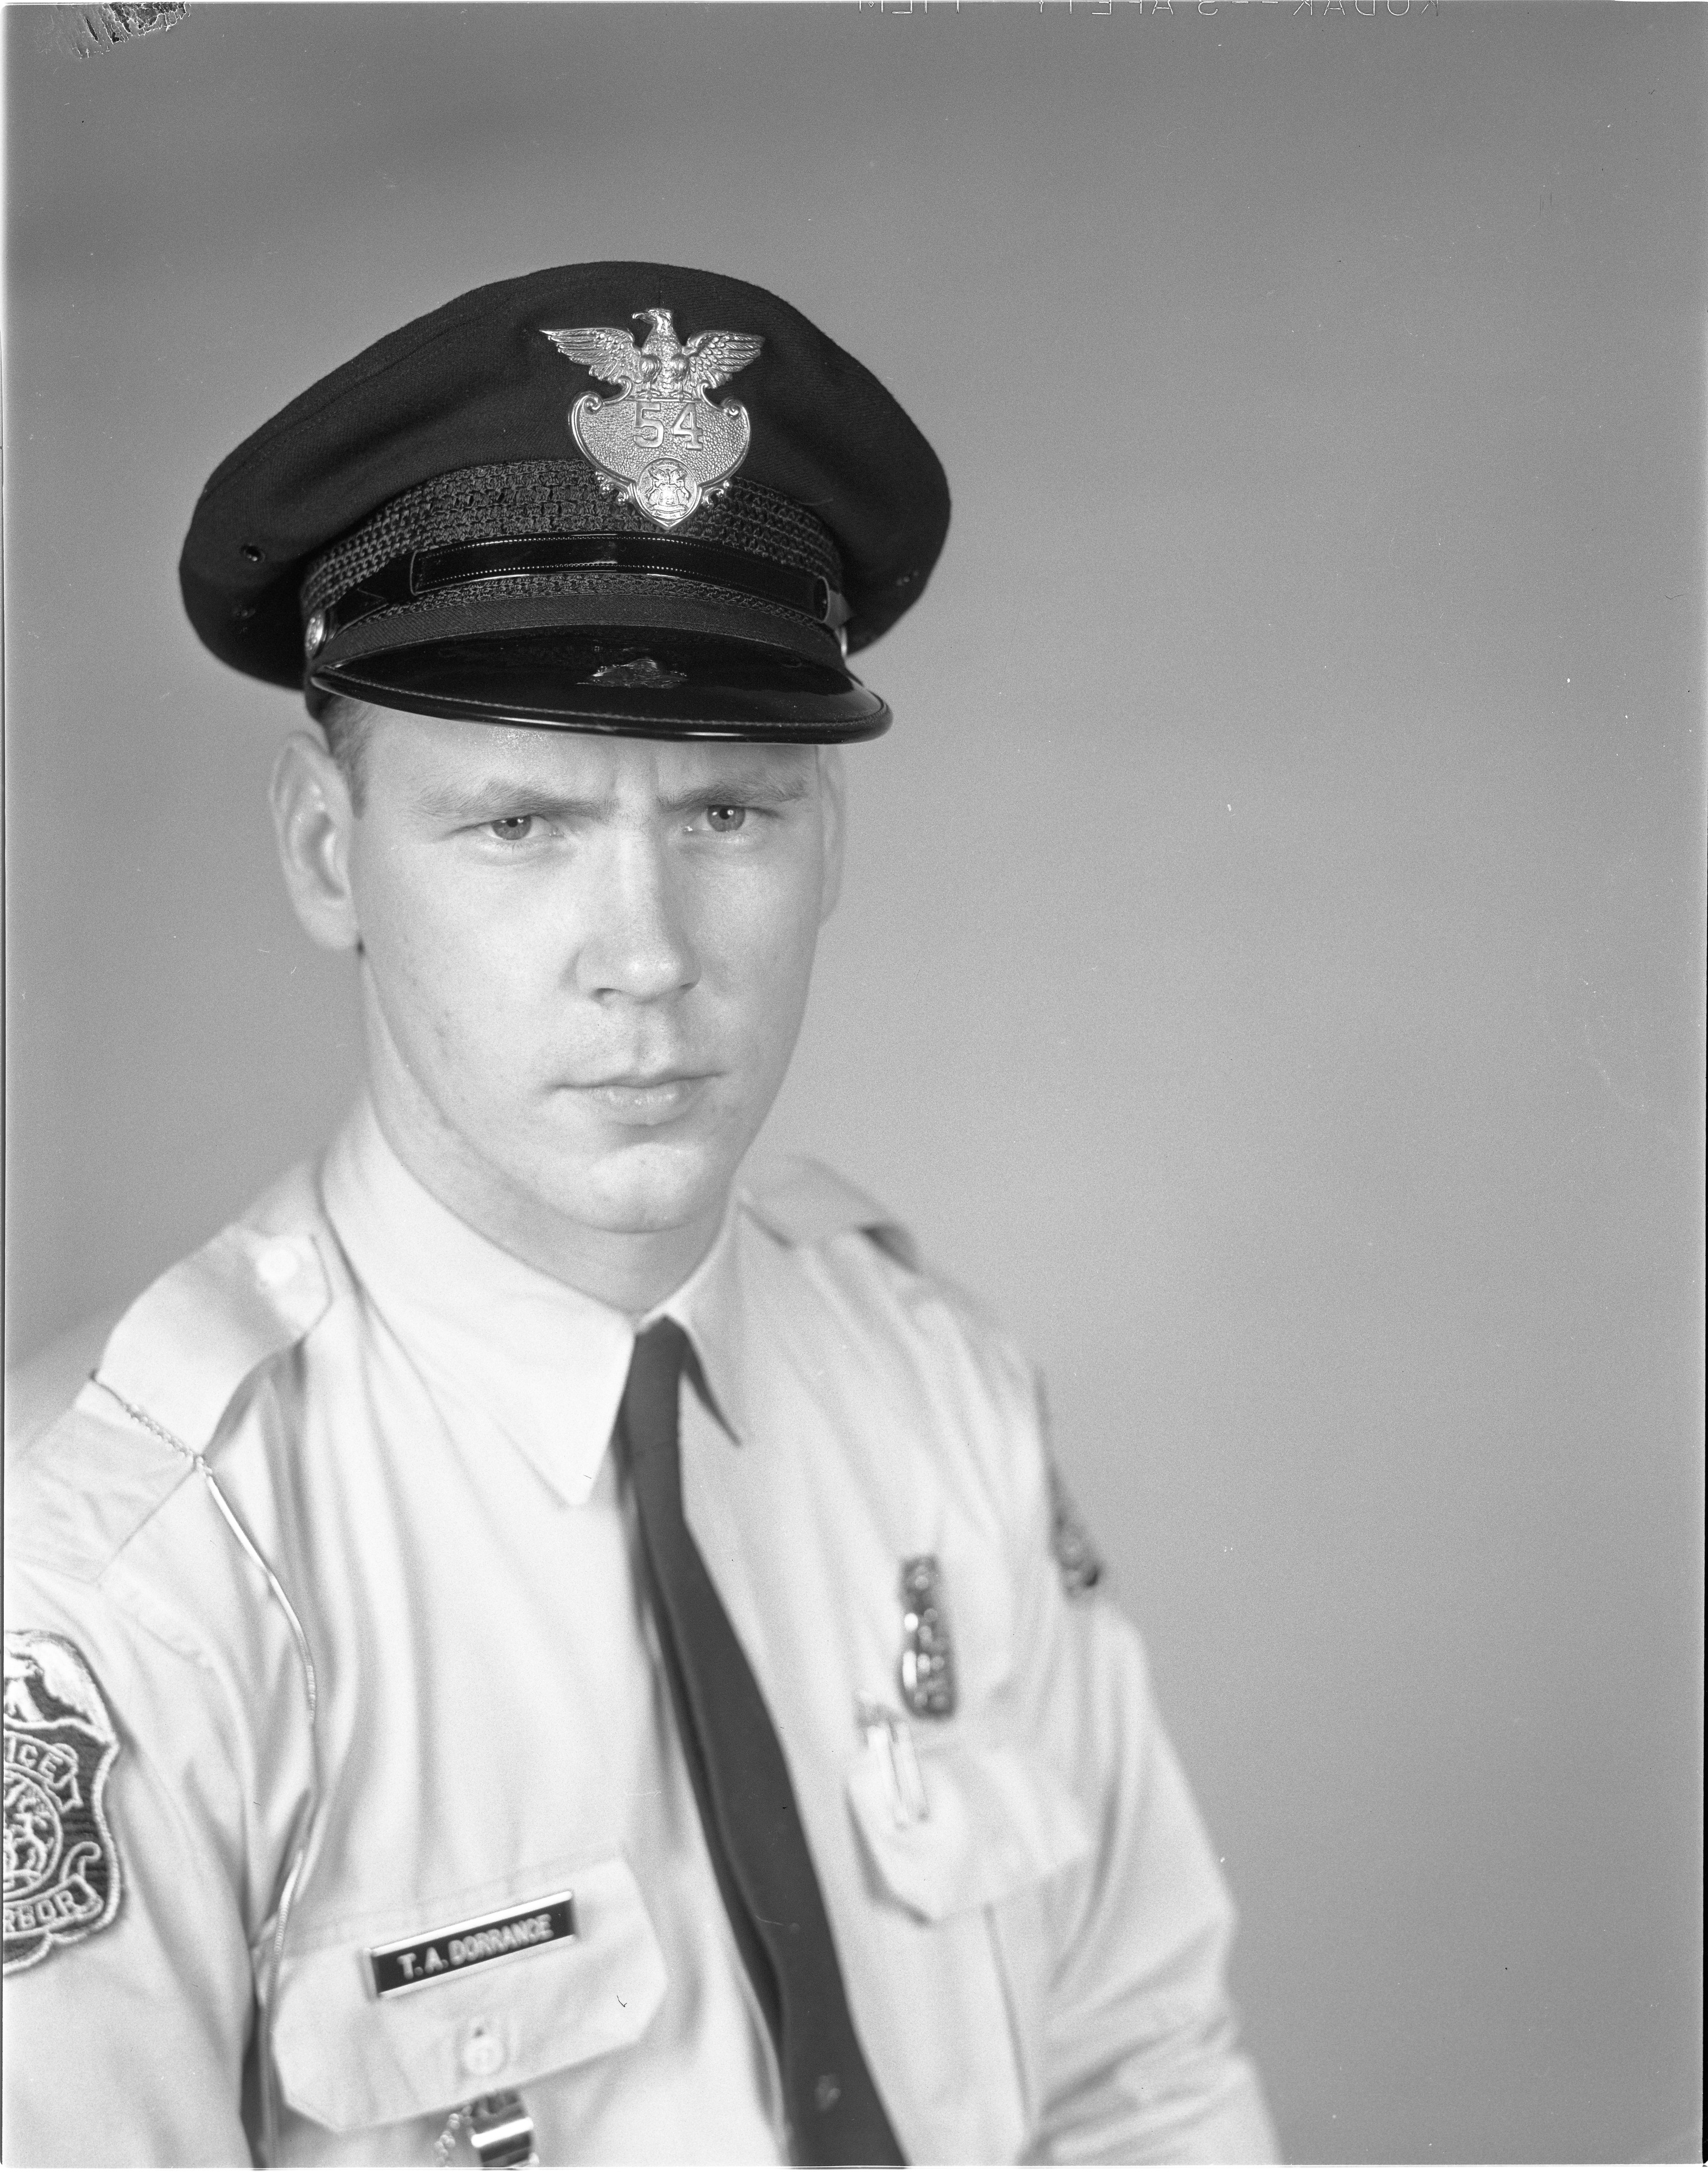 Ann Arbor Police Department Officer Thomas A. Dorrance, September 1962 image